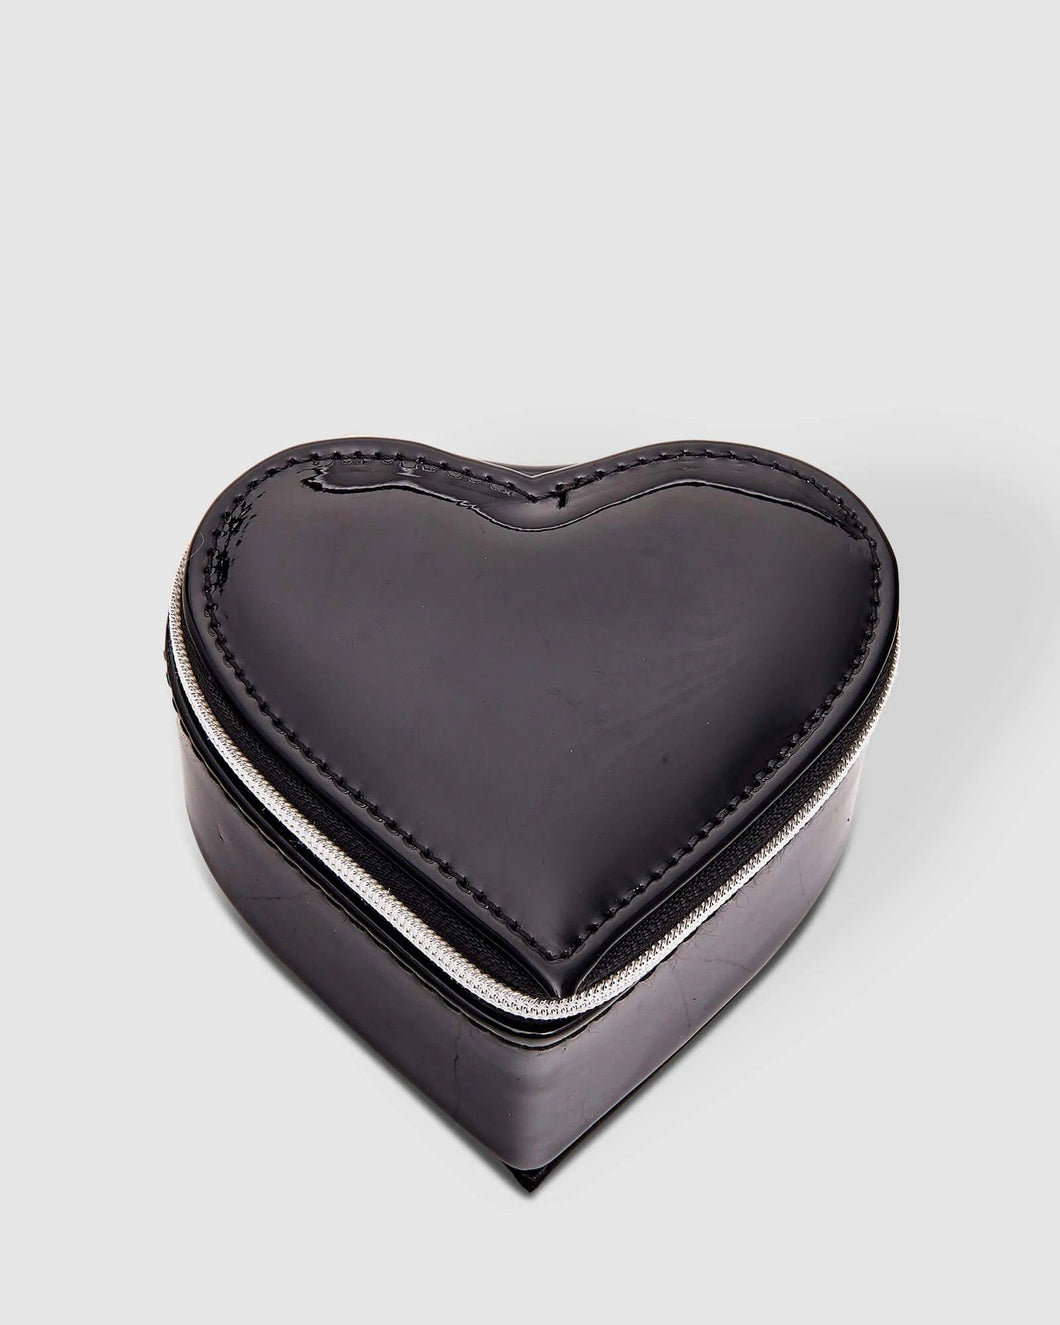 Louenhide Heart Jewellery Box Patent Black - Global Free Style